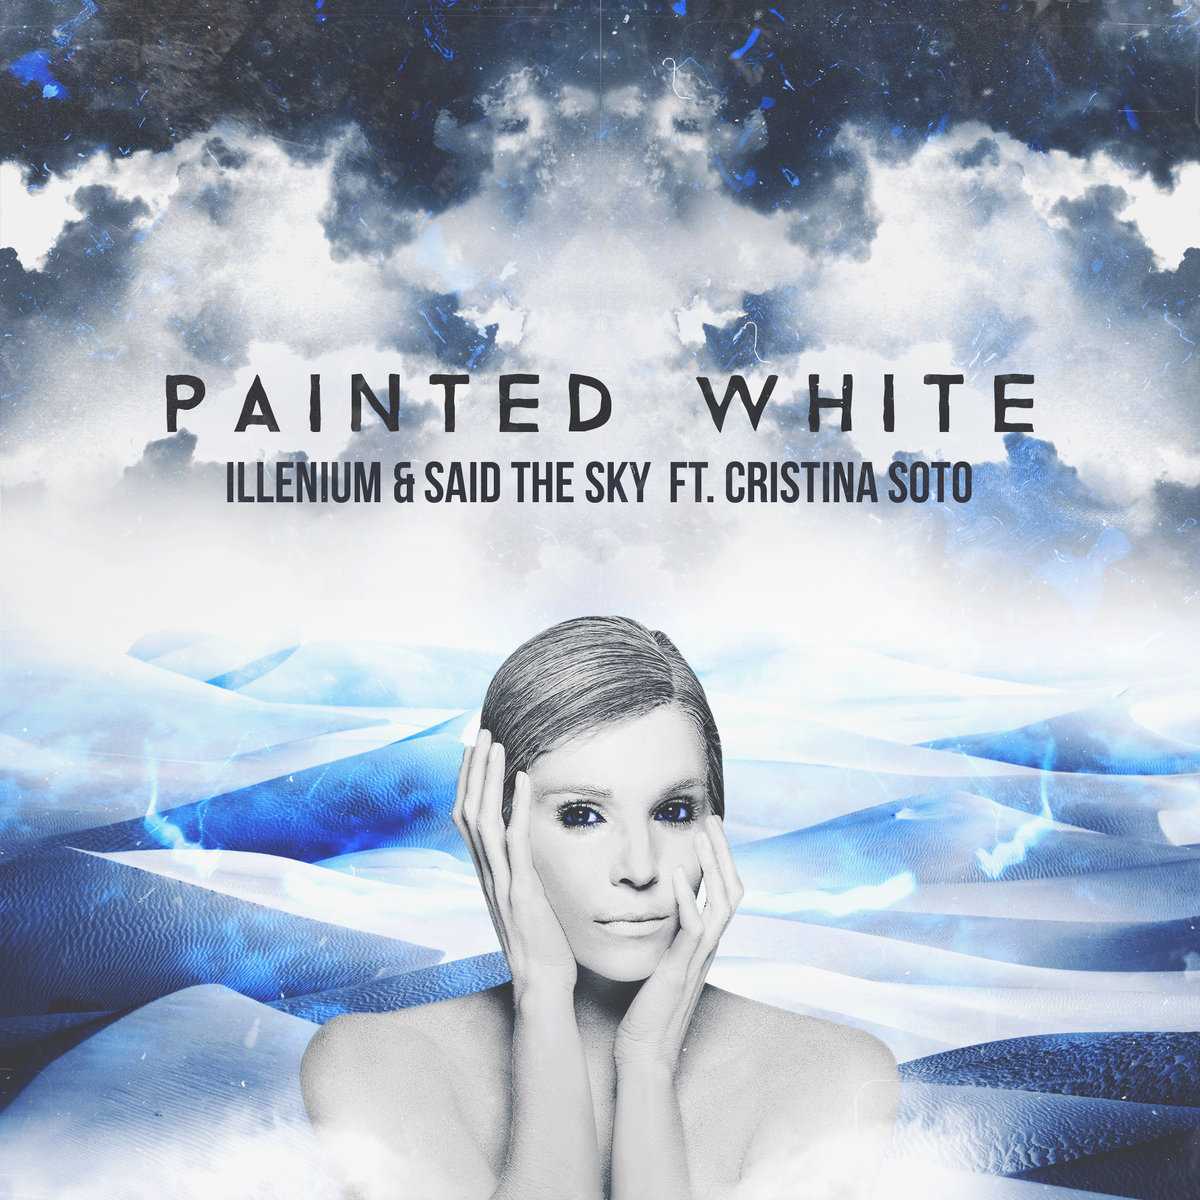 Illenium, Said The Sky, & Cristina Soto - Painted White (Au5 & Fractal Remix) @ 'Painted White' album (idm, bass)